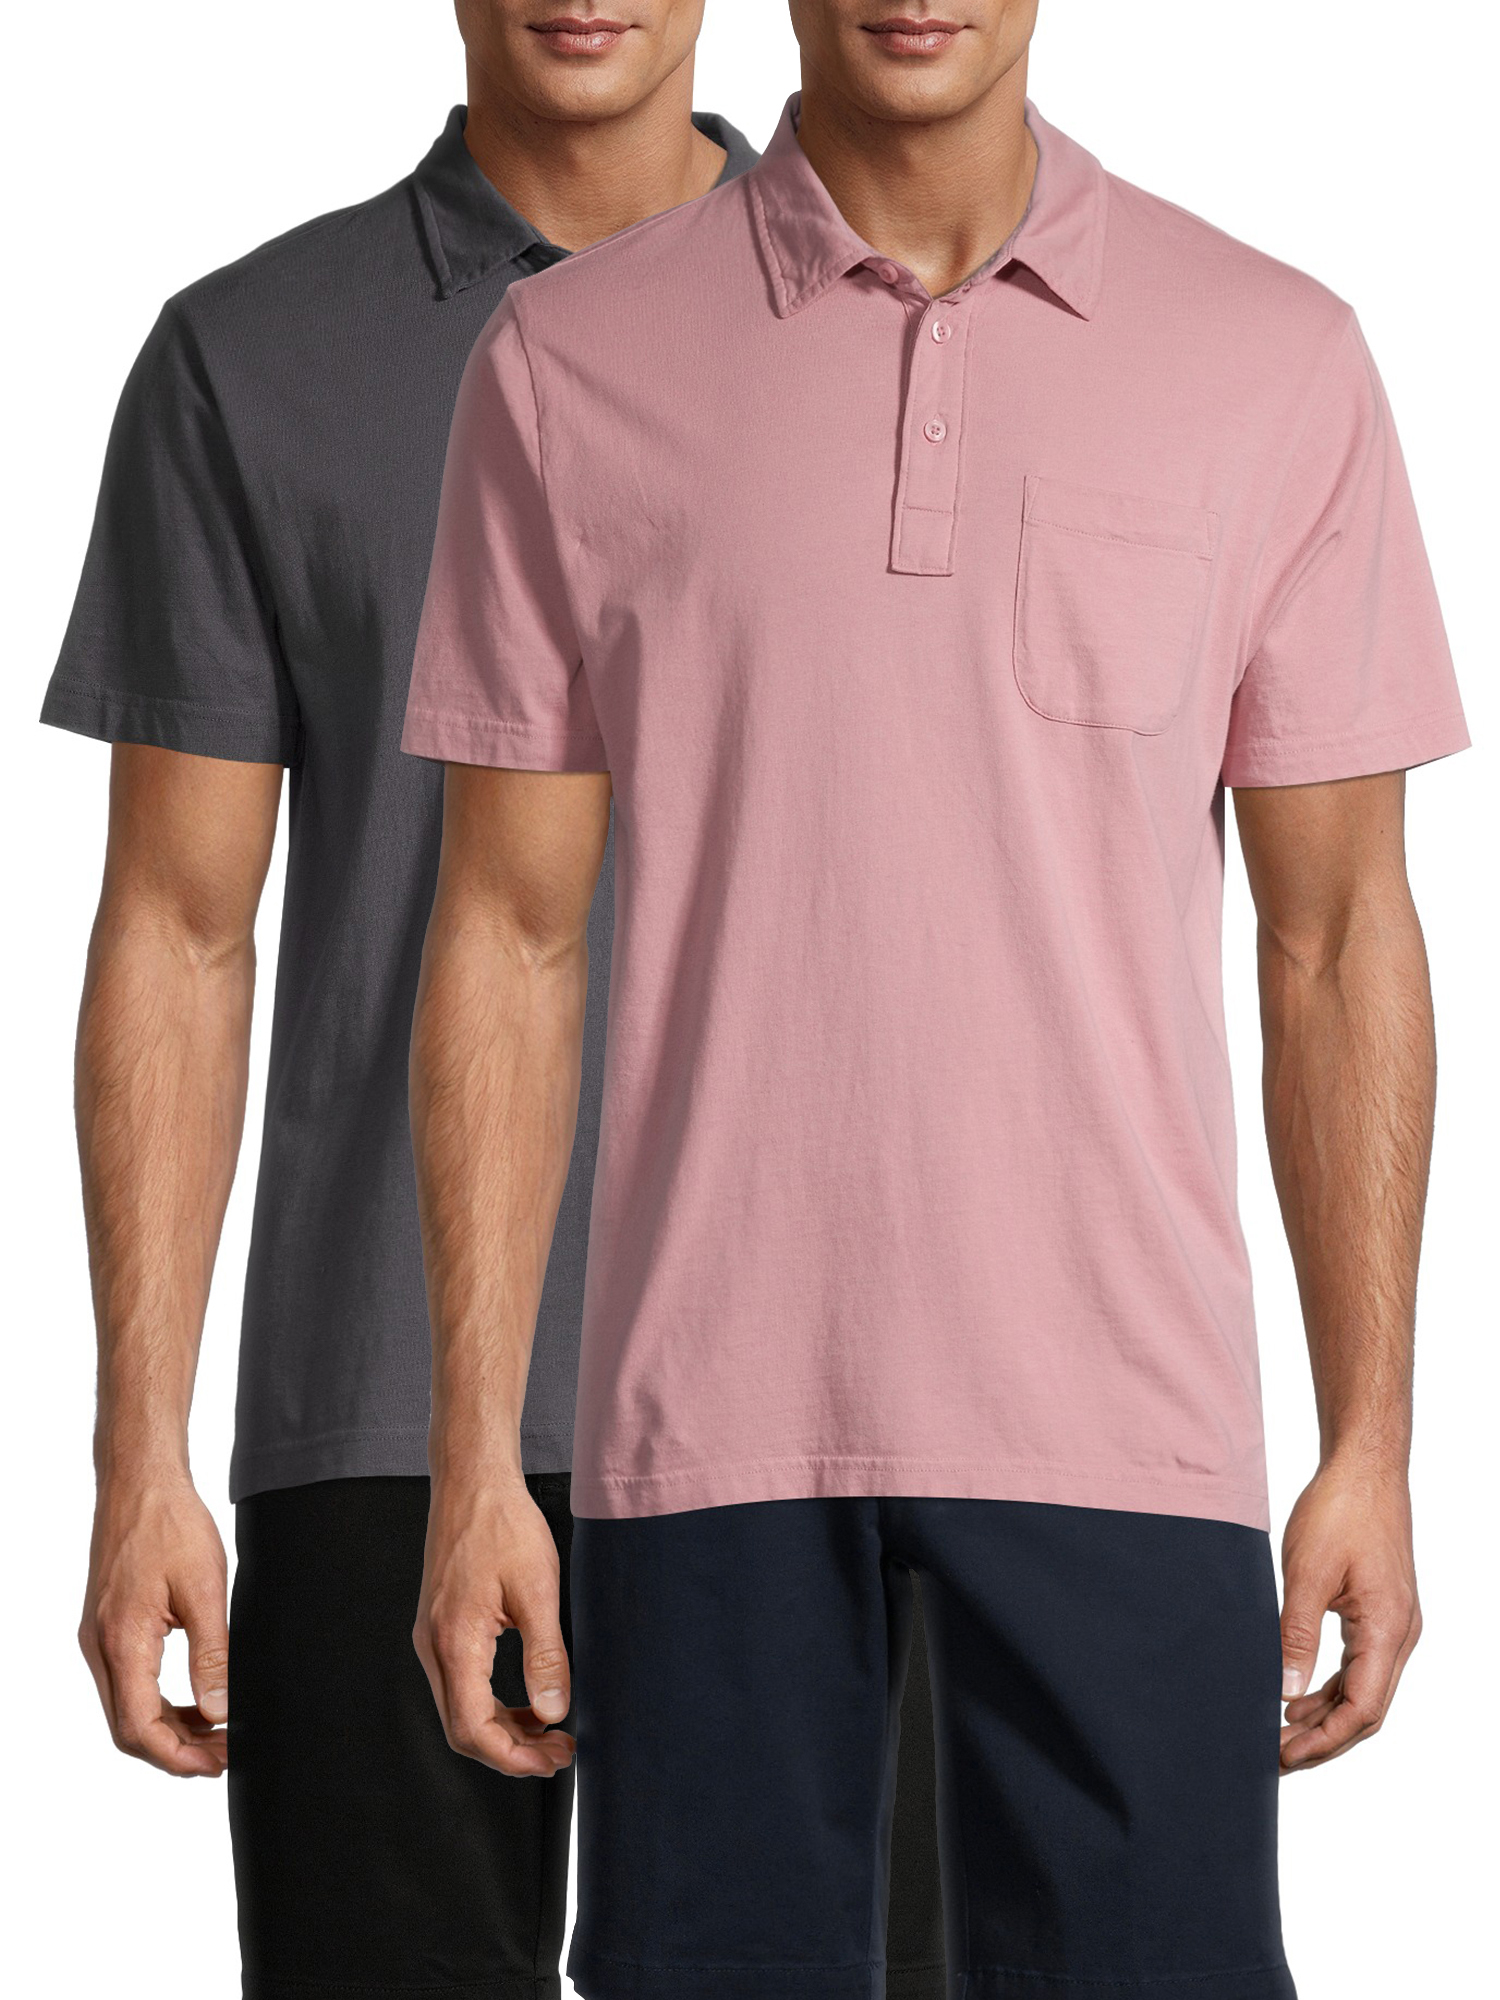 GEORGE BROWN SHORT SLEEVED POLO SHIRT SIZE  MEDIUM BRAND NEW WITH TAGS